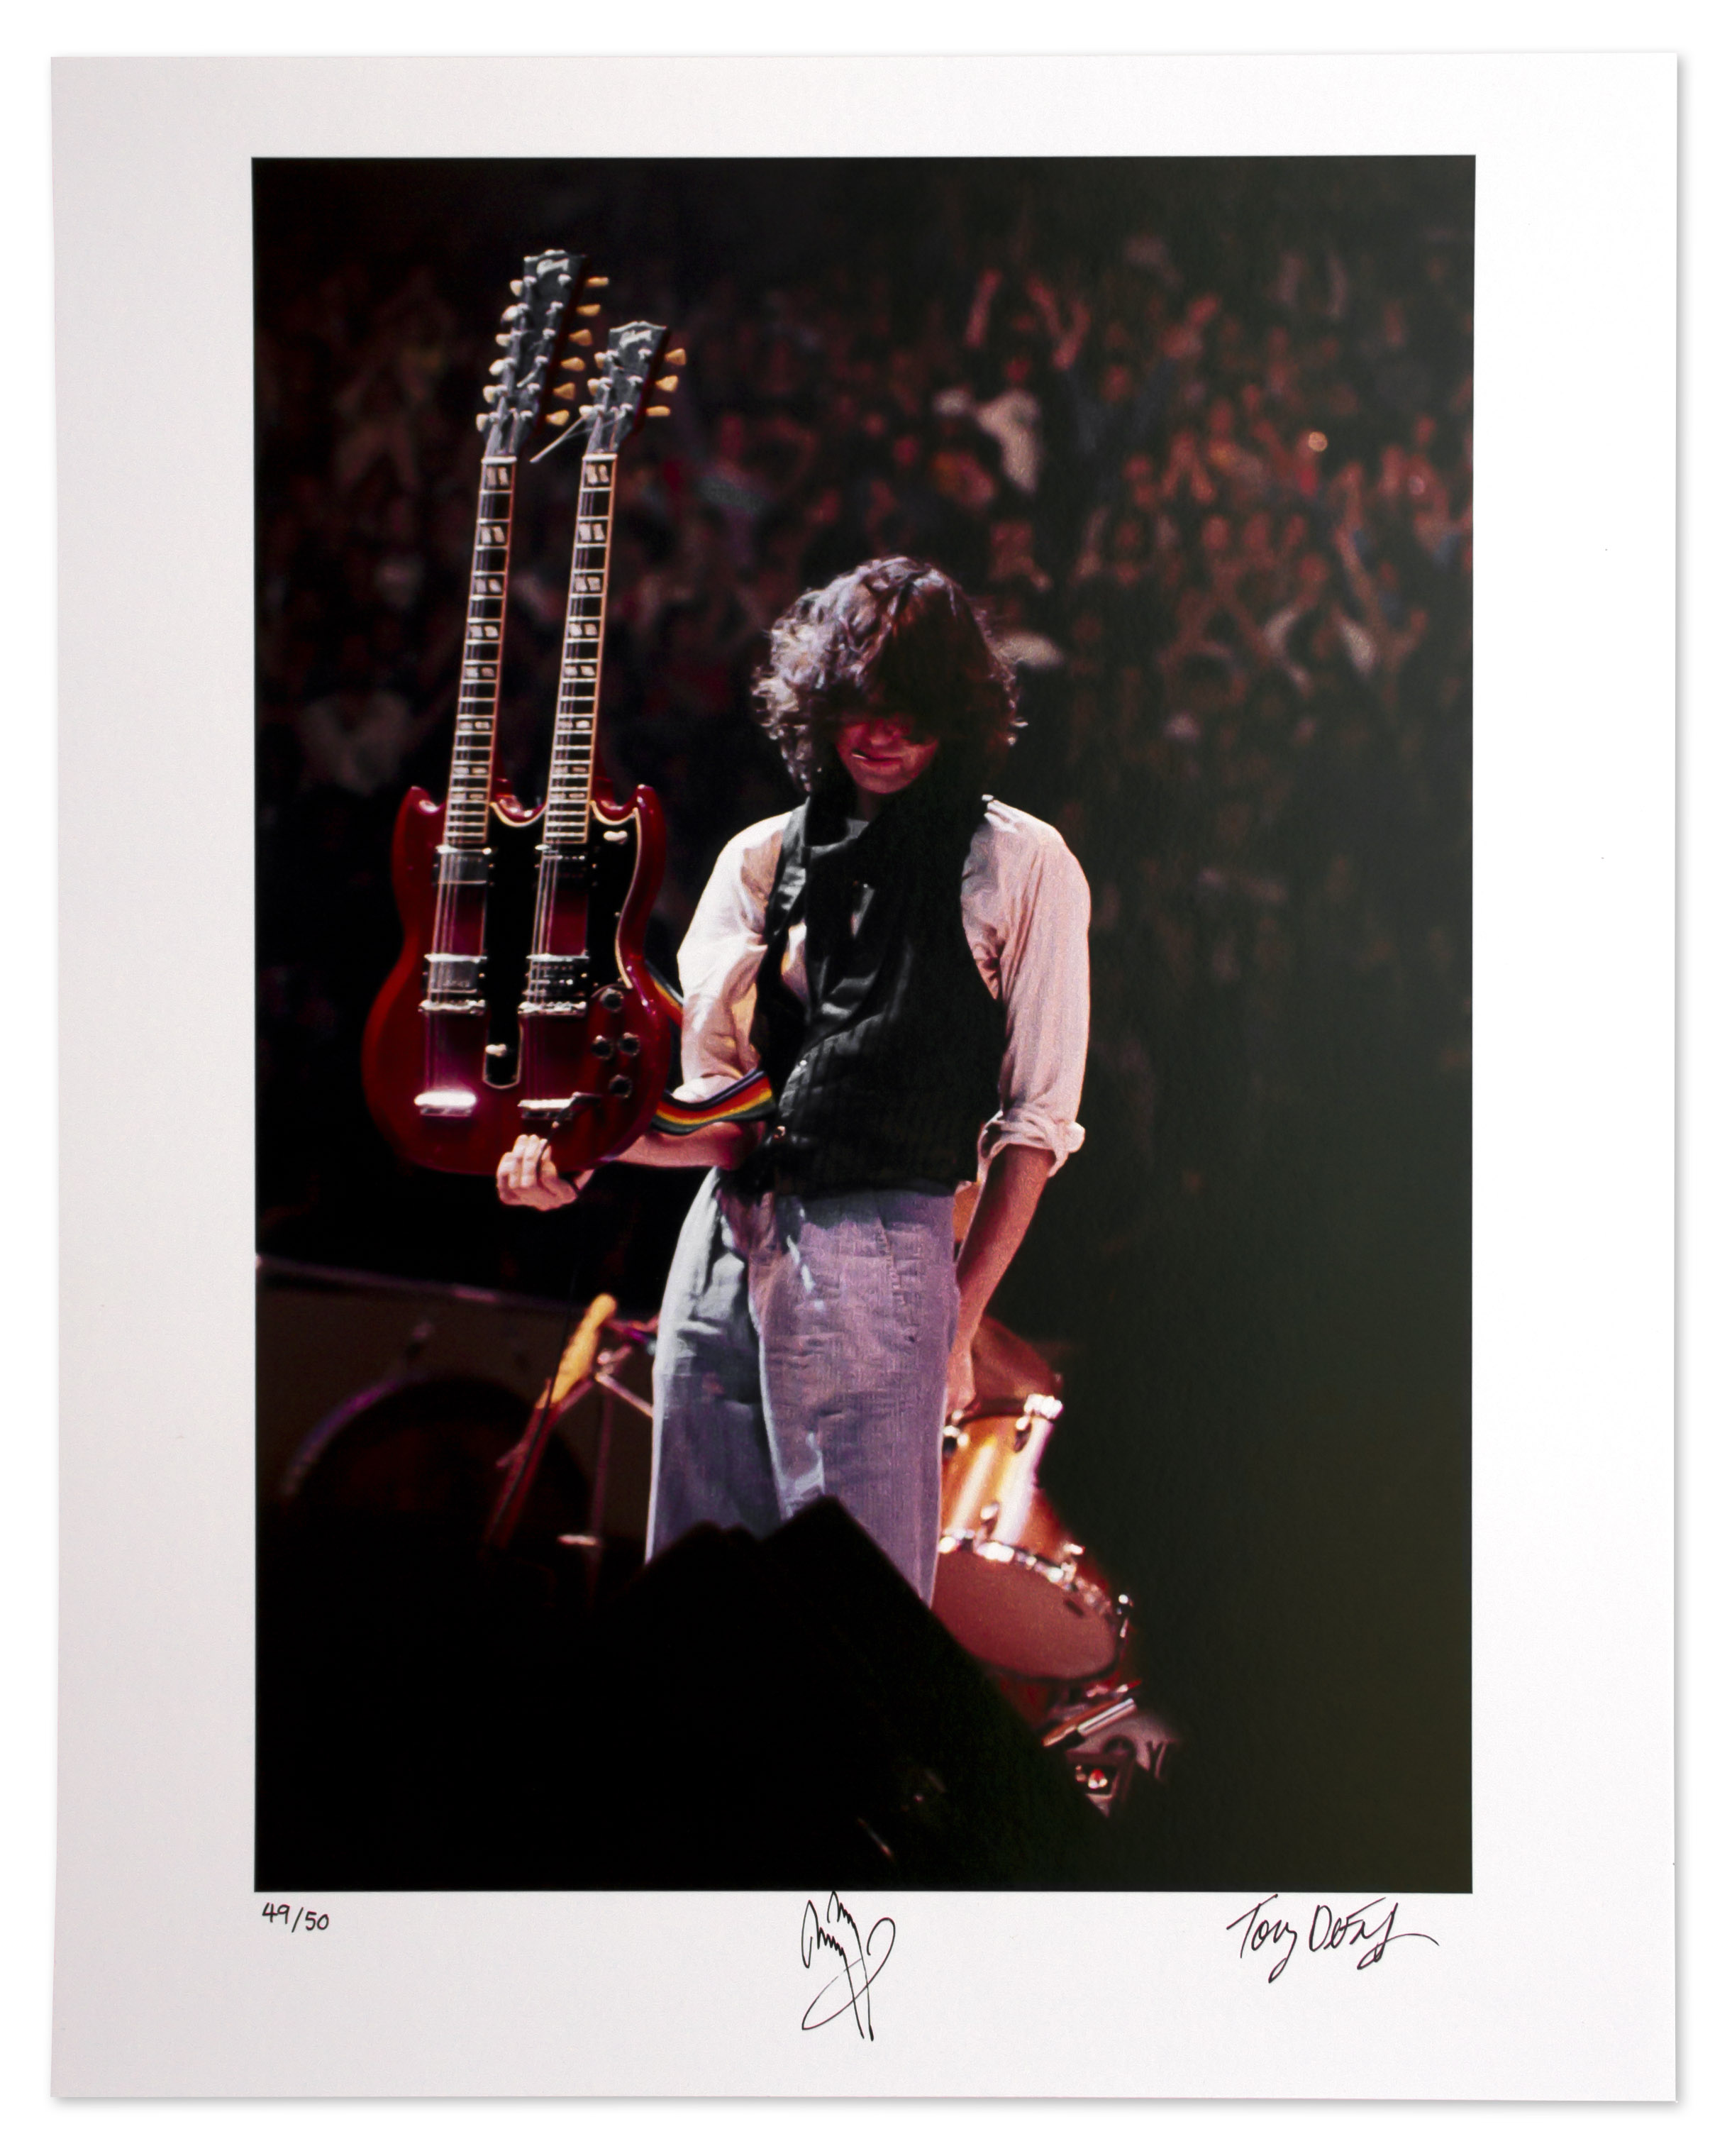 lot detail jimmy page signed limited edition 16 39 39 x 20 39 39 photo holding his double necked. Black Bedroom Furniture Sets. Home Design Ideas